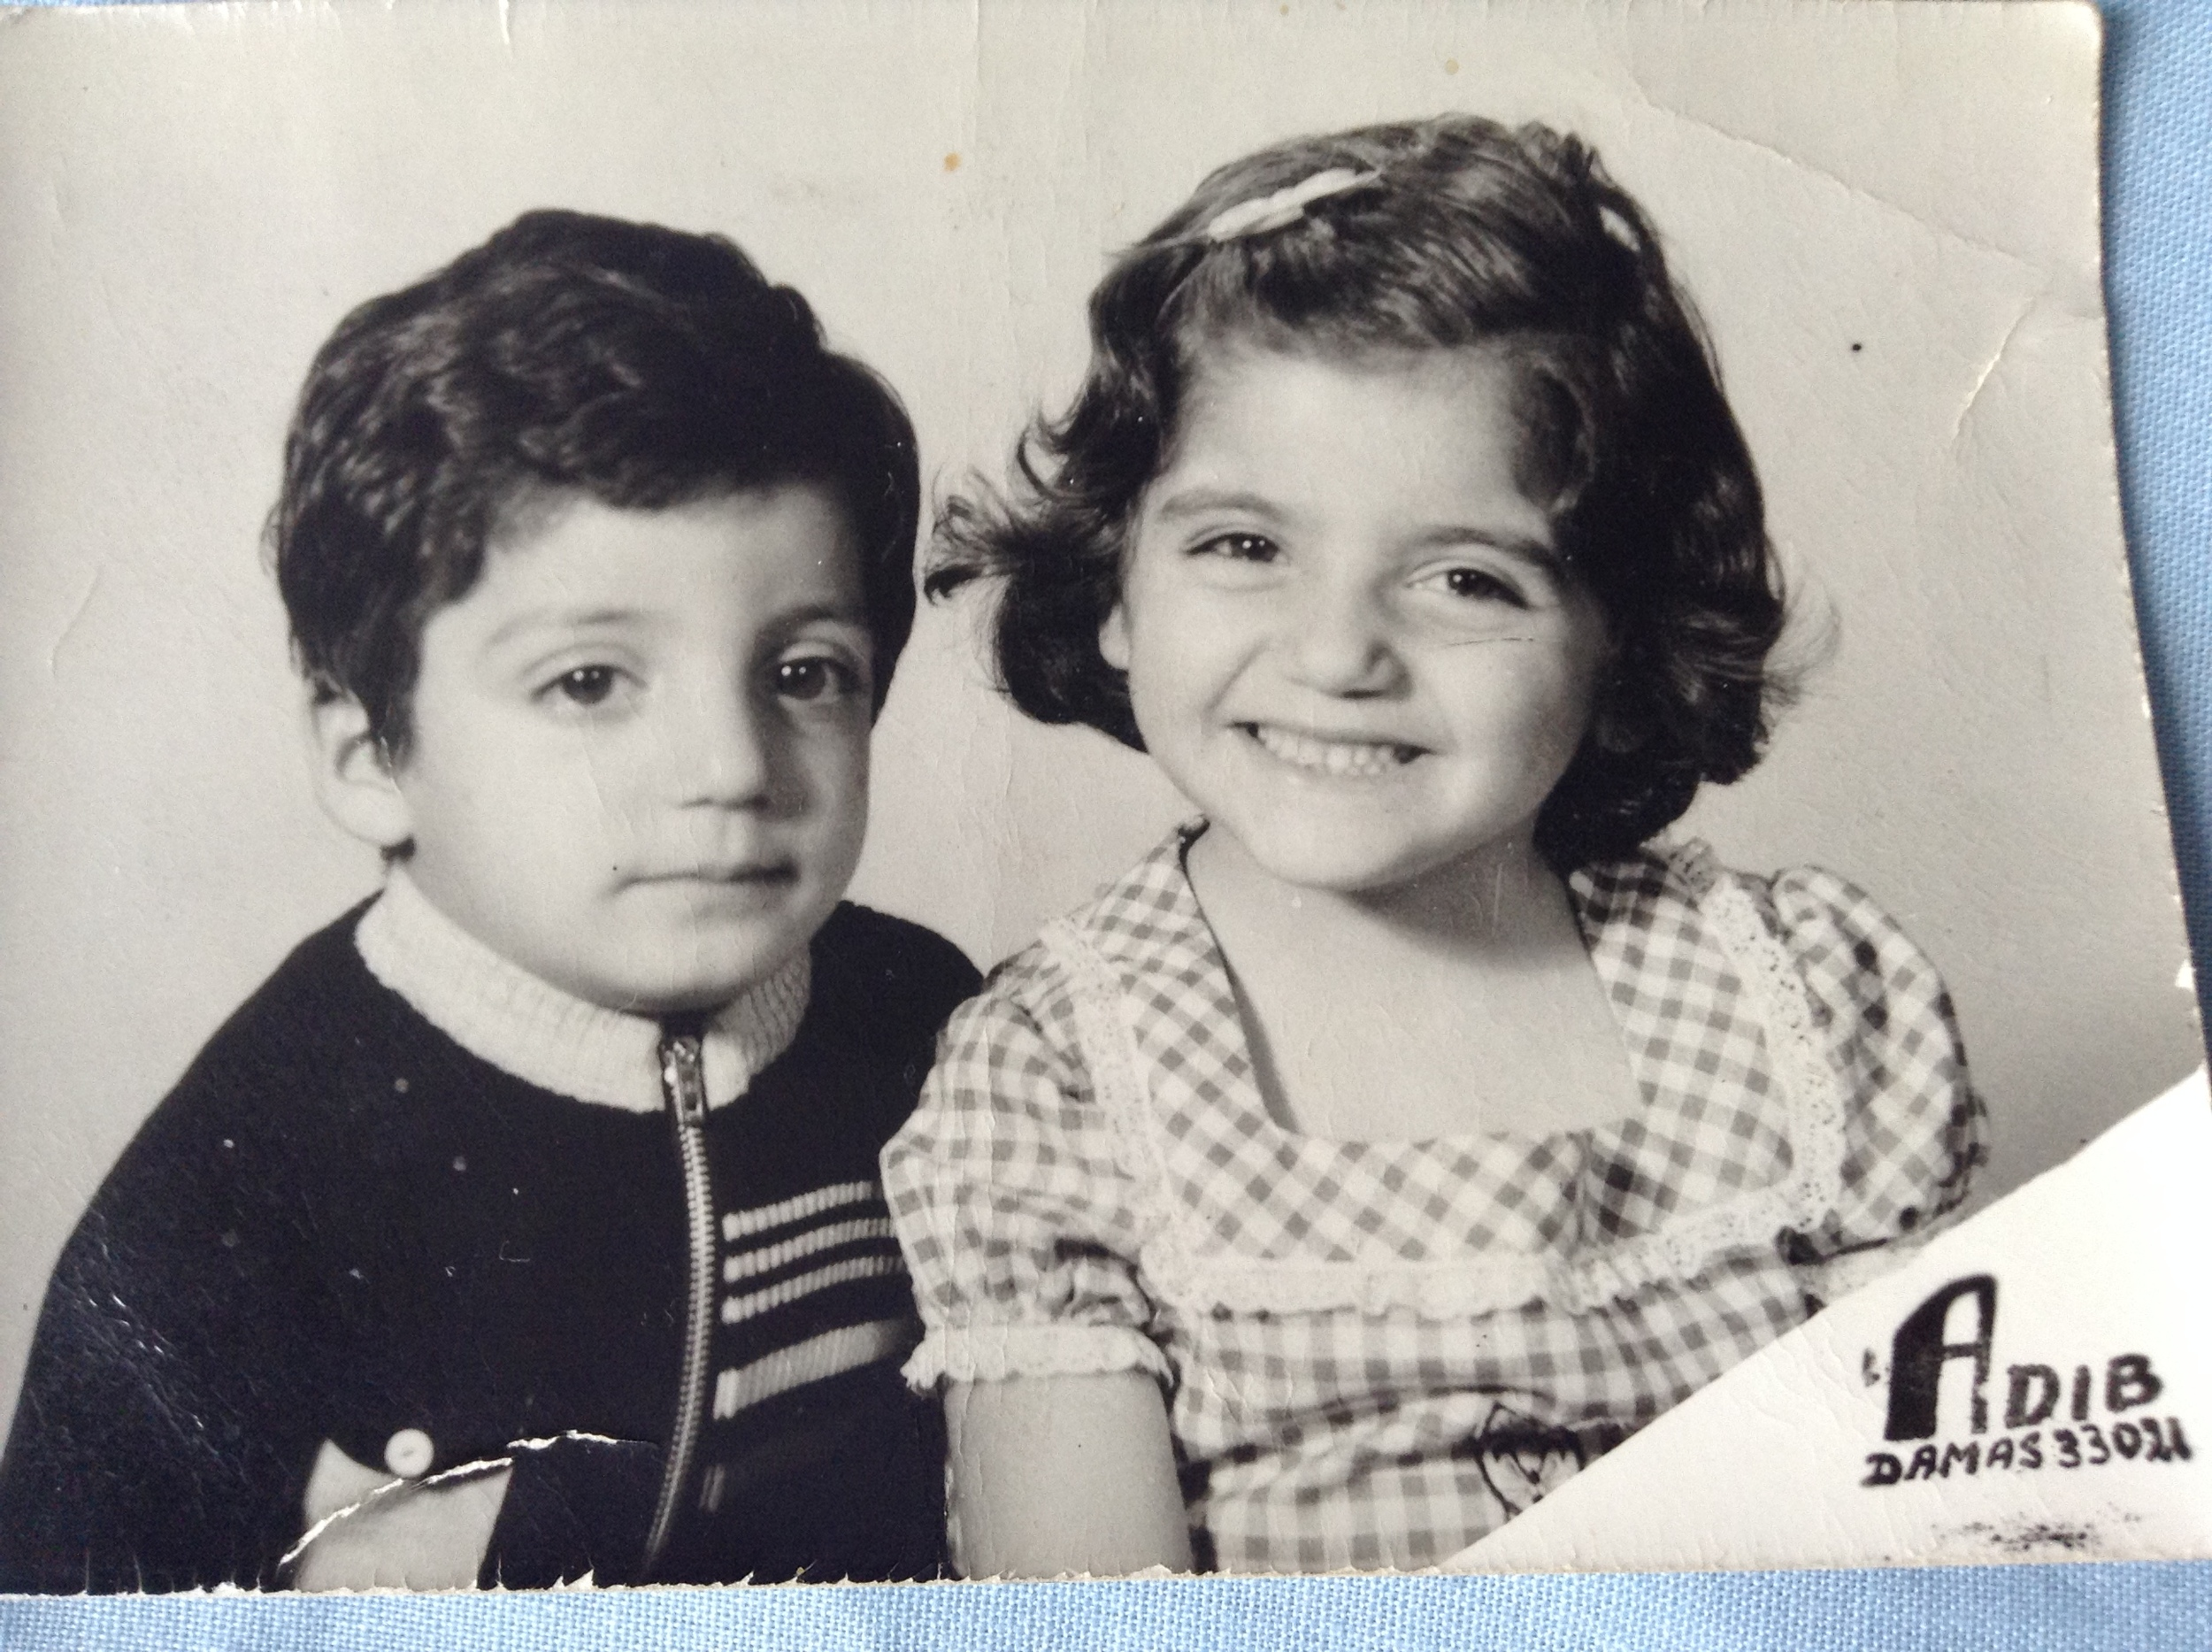 My brother and I at the age of 5 and 6 respectively.